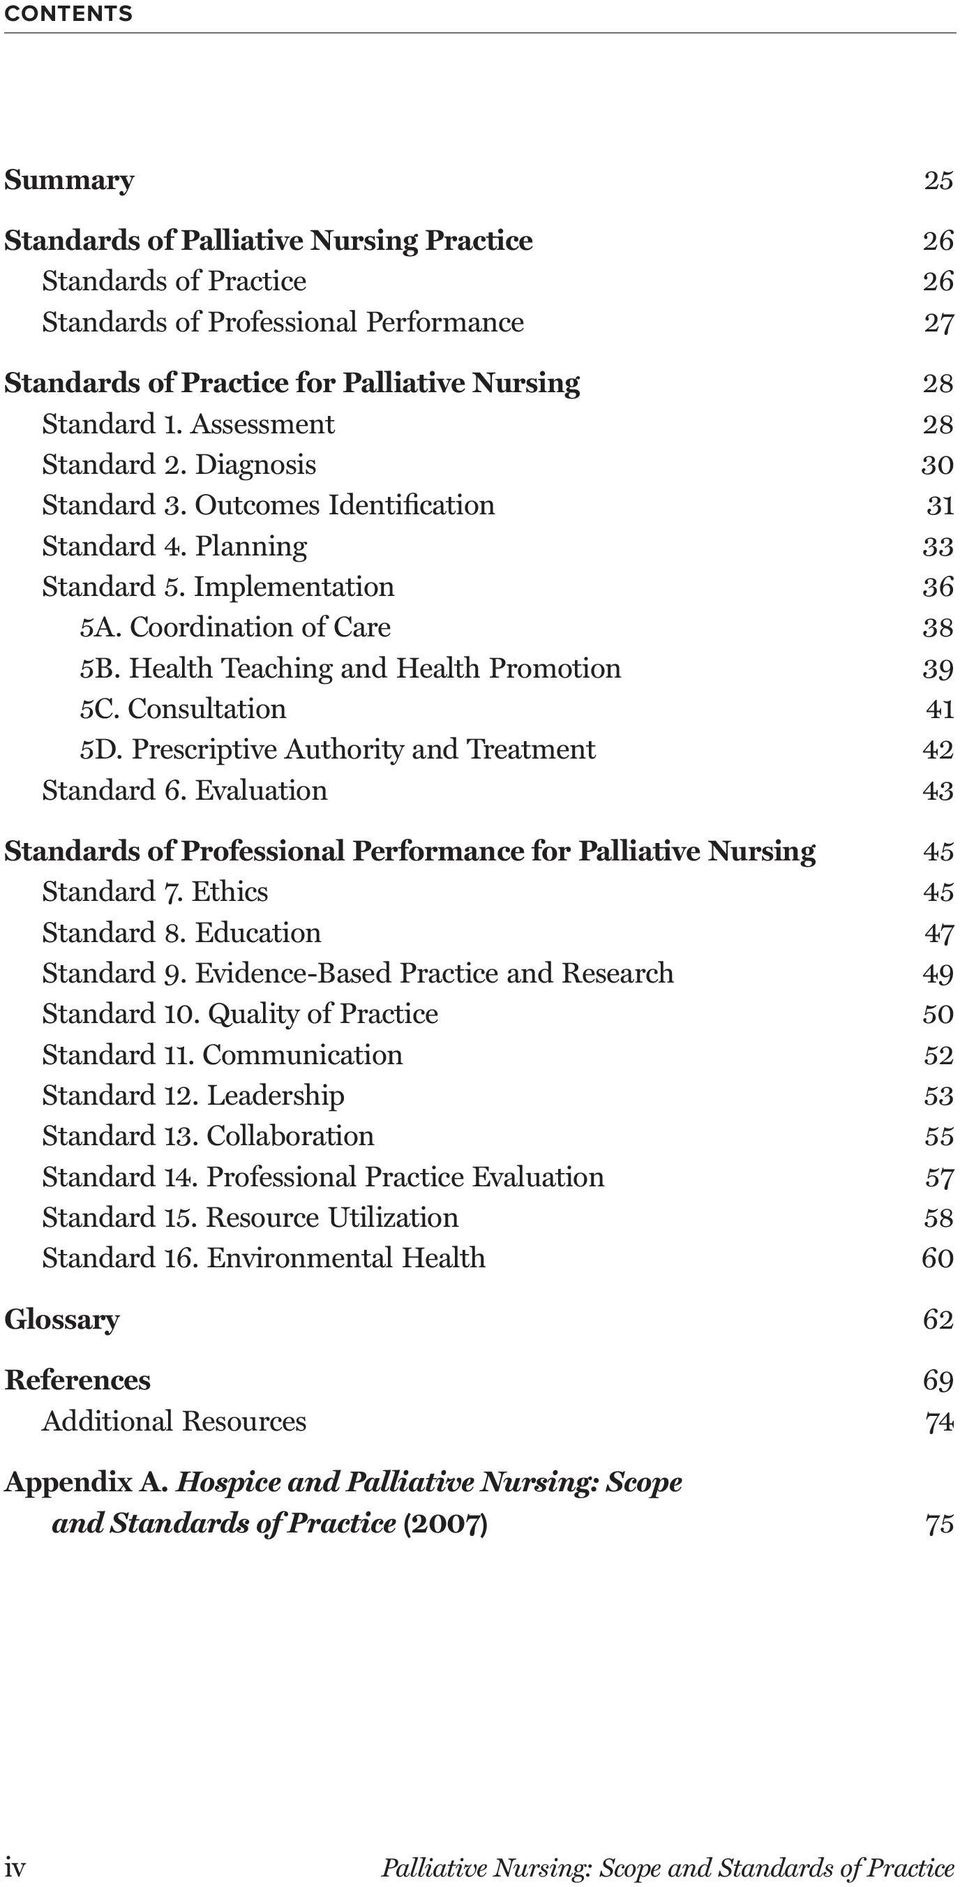 Health Teaching and Health Promotion 39 5C. Consultation 41 5D. Prescriptive Authority and Treatment 42 Standard 6.